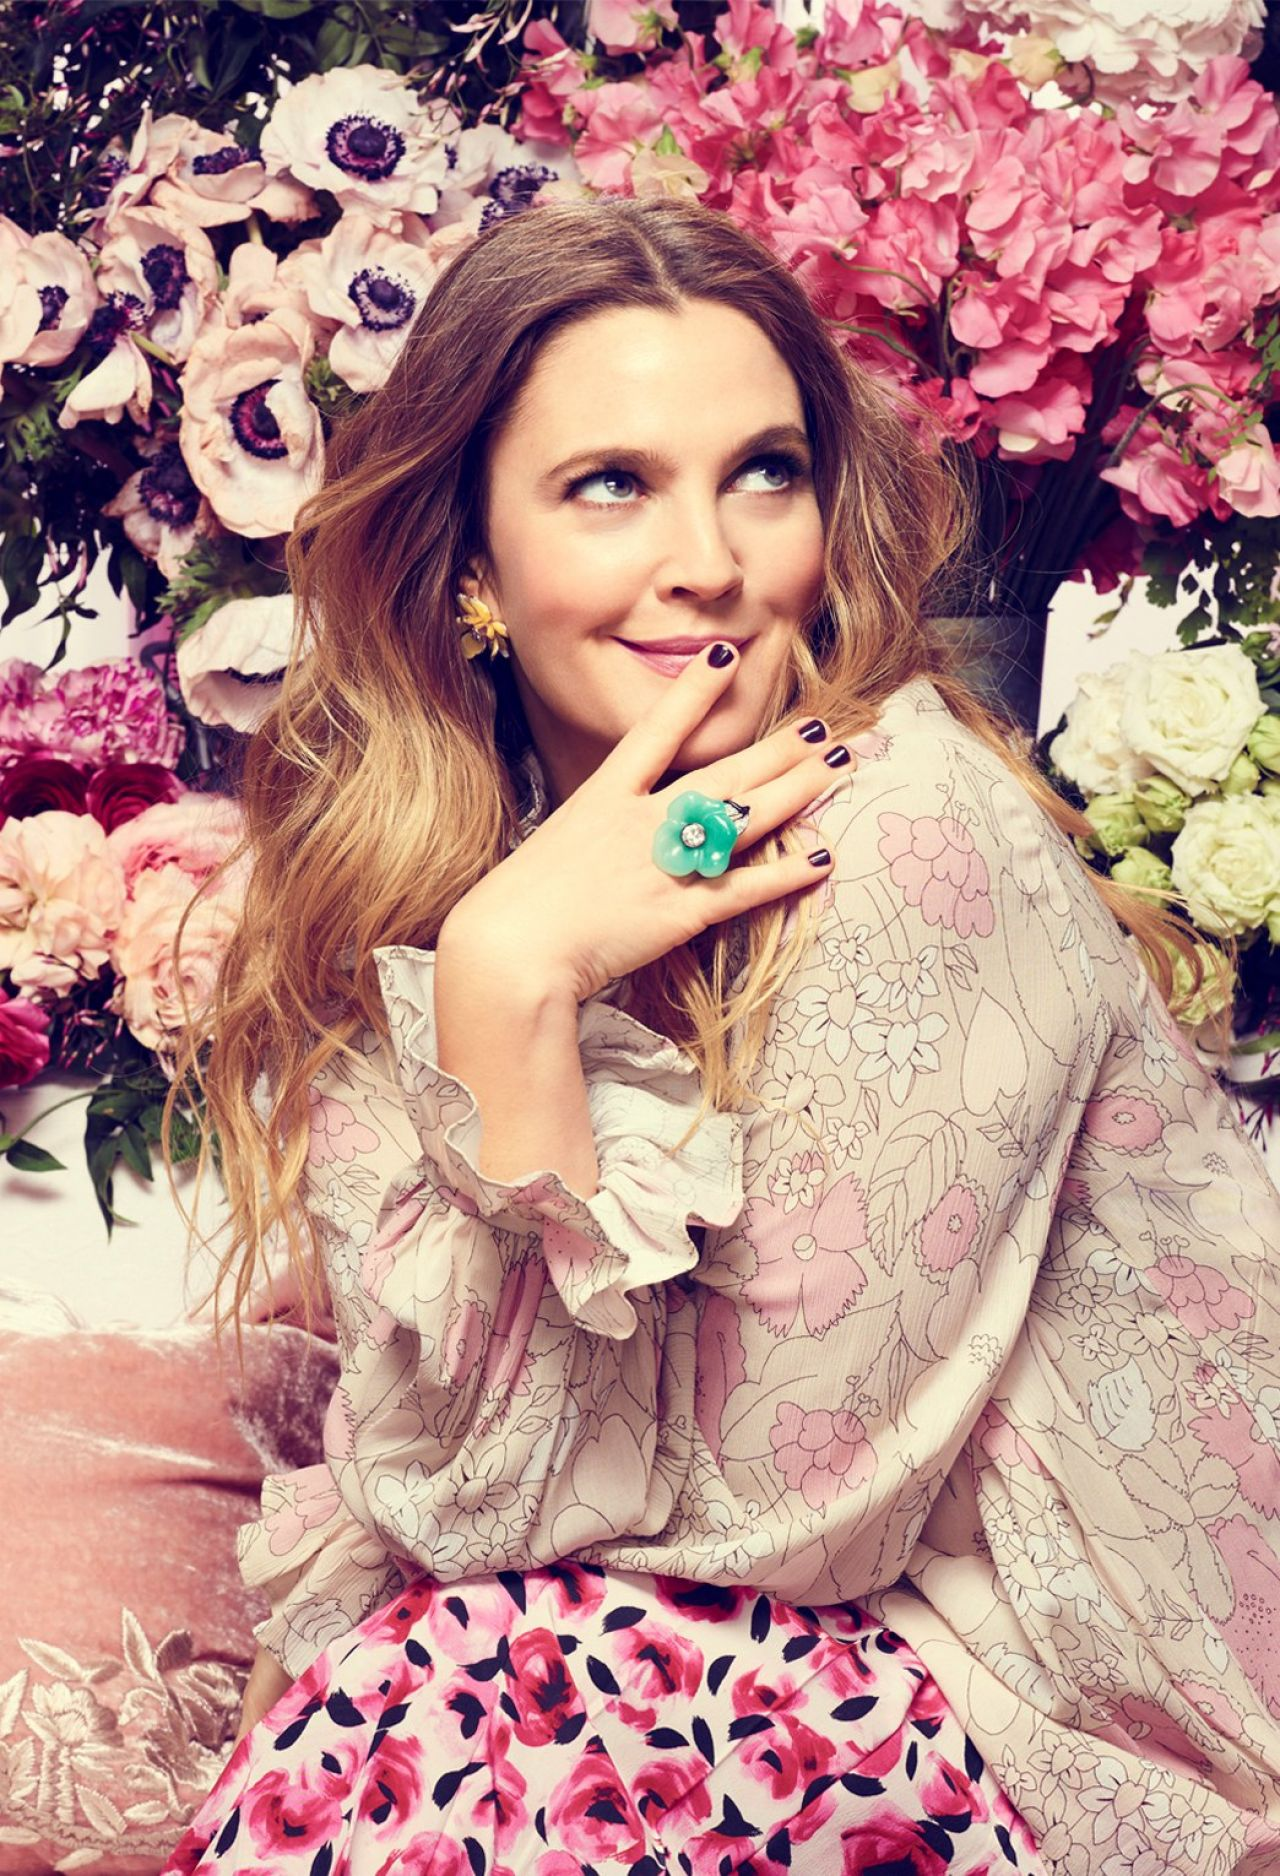 Drew Barrymore Photoshoot For Good Housekeeping May 2016